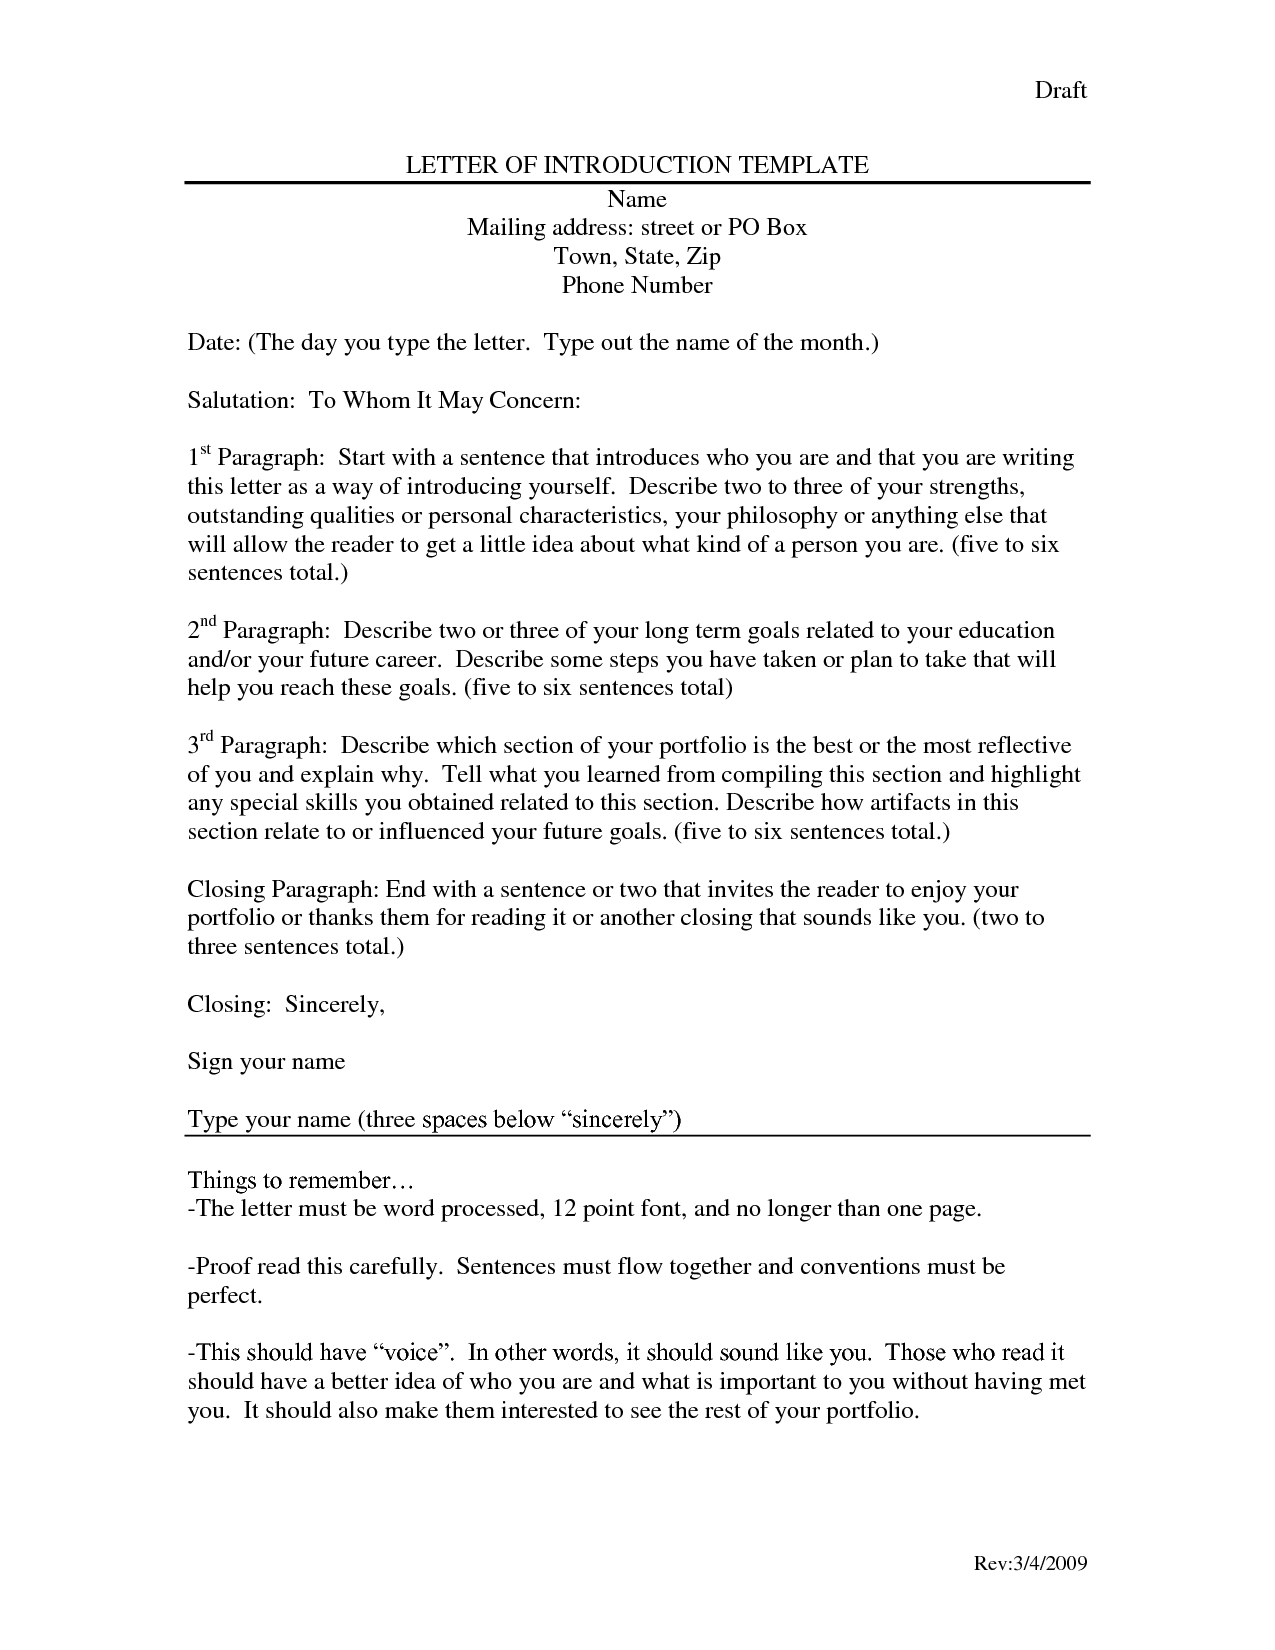 letter of introduction template dancingmermaidcom yfzce92i  u2026